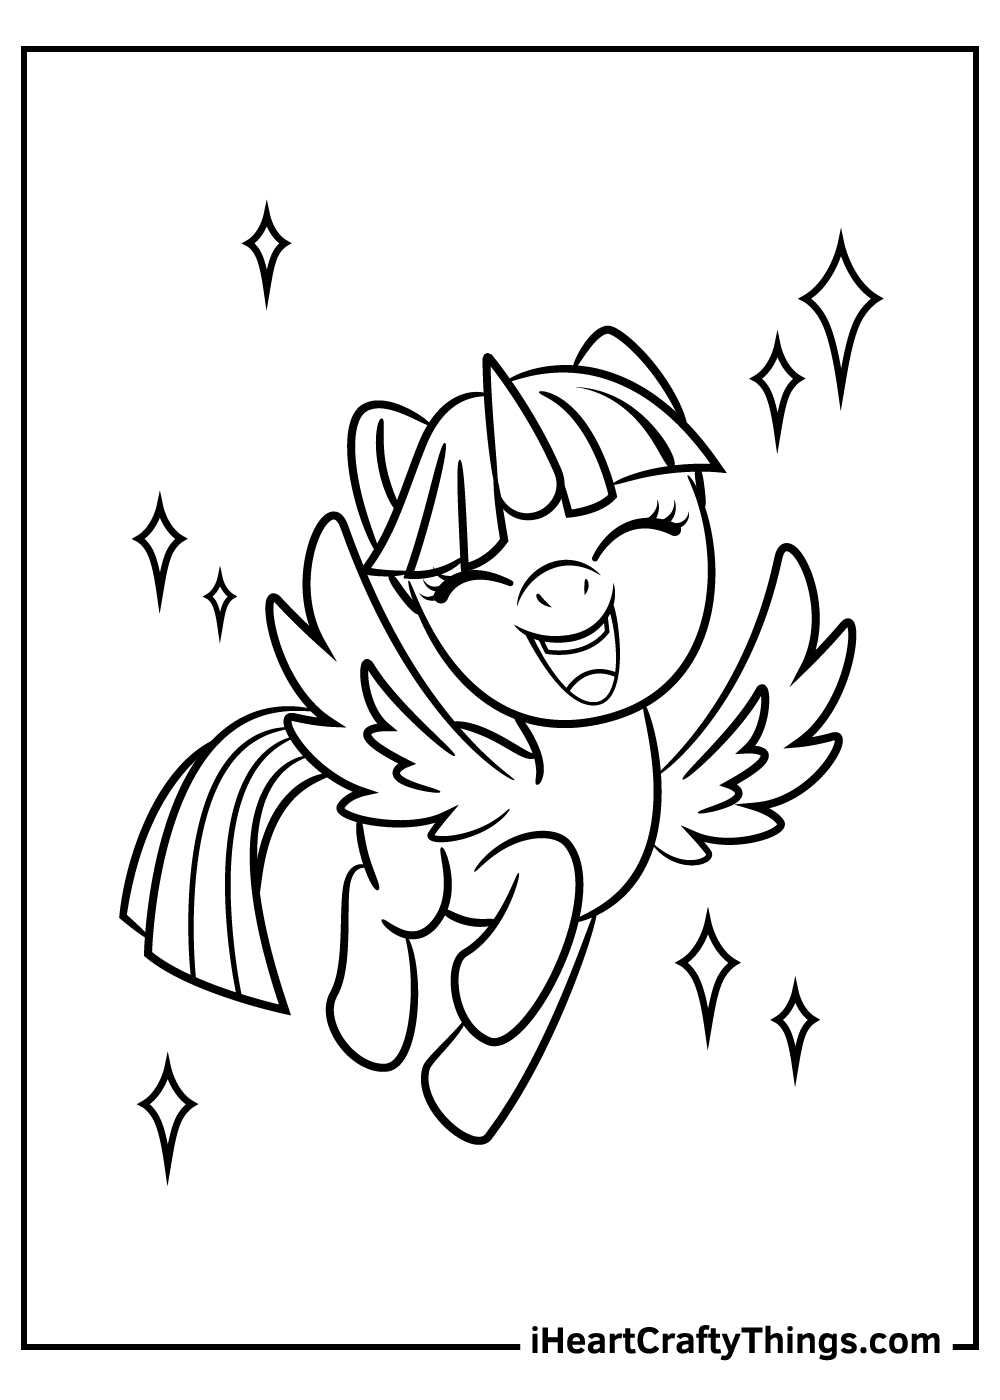 my little pony coloring updated printing running sheet trucks free printables incredibles coloring pages My Little Pony Printing Coloring Page